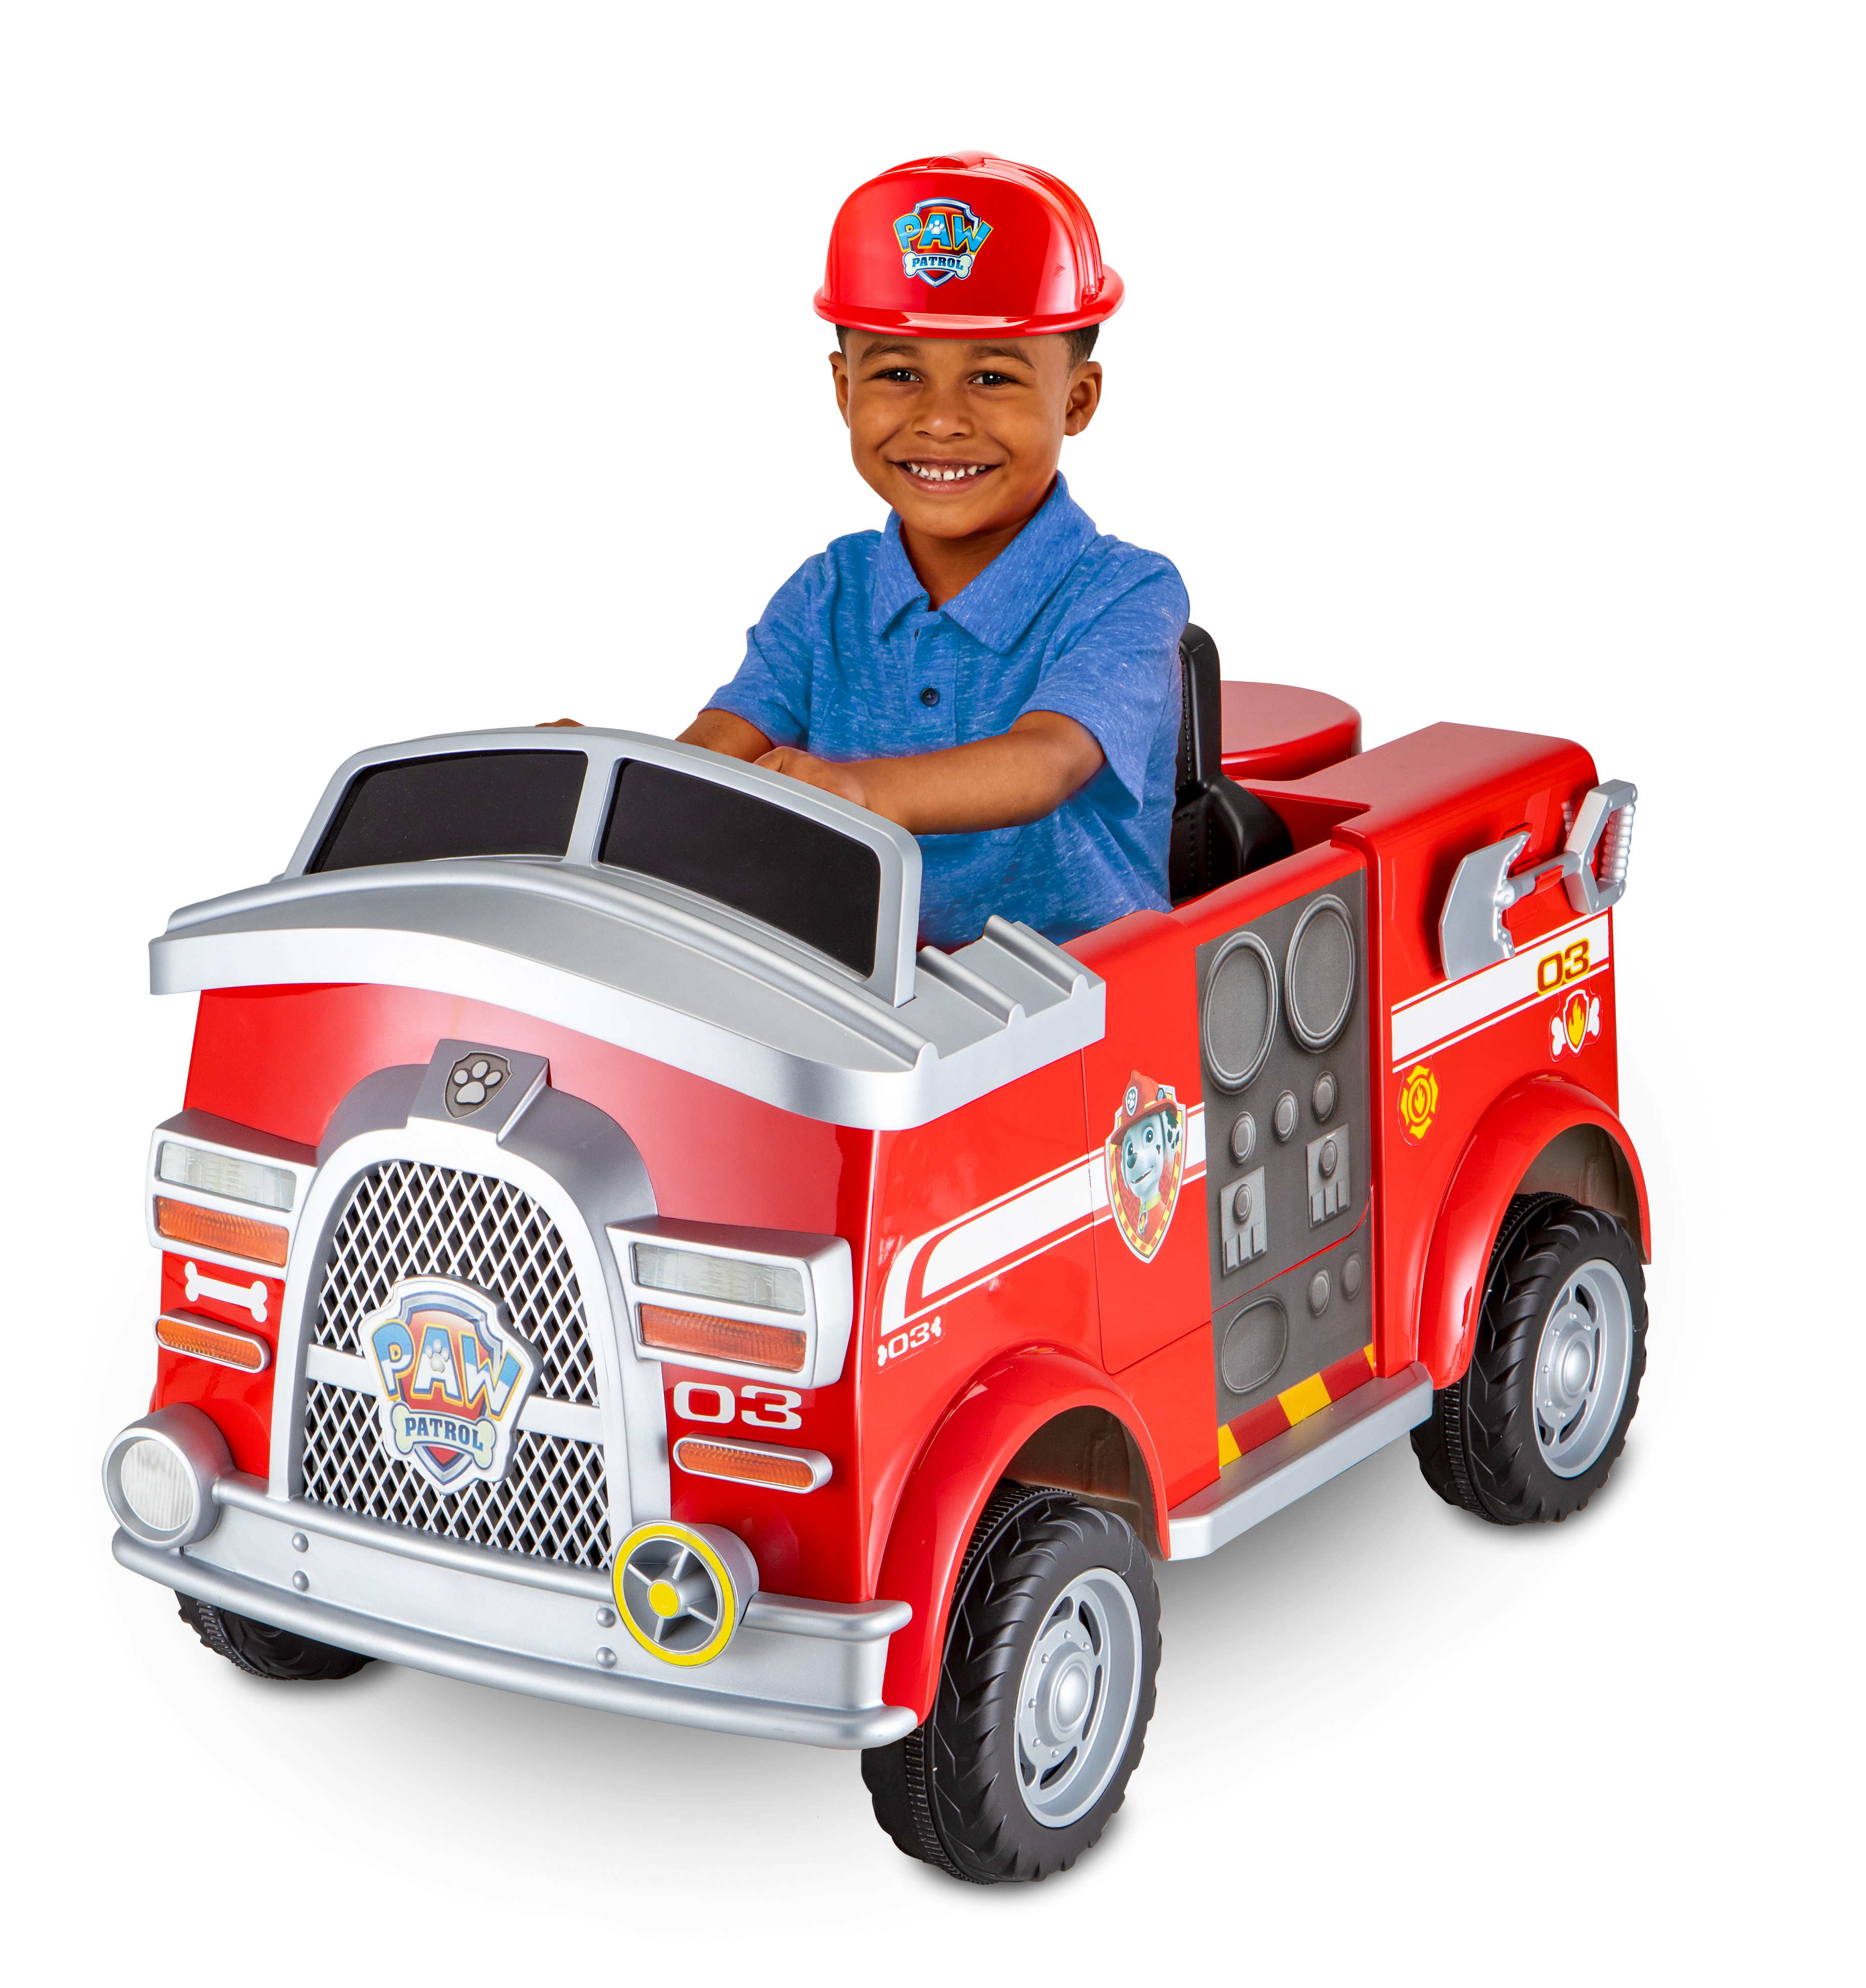 Paw Patrol Fire Truck 6 Volt powered Ride On Toy by Kid Trax, Marshall rescue by Pacific Cycle